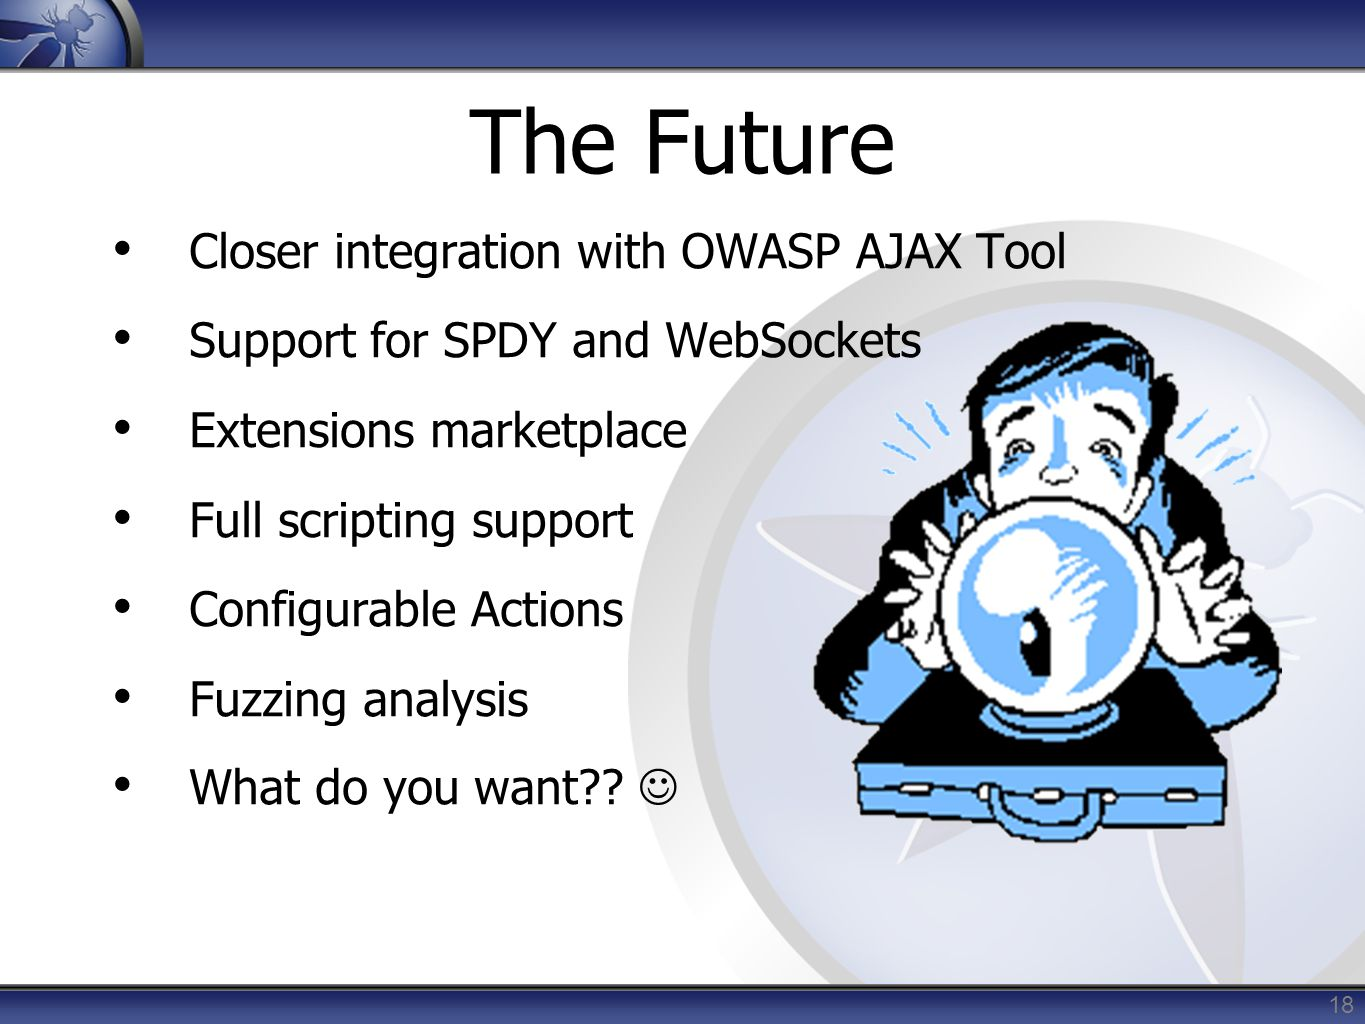 18 The Future Closer integration with OWASP AJAX Tool Support for SPDY and WebSockets Extensions marketplace Full scripting support Configurable Actions Fuzzing analysis What do you want